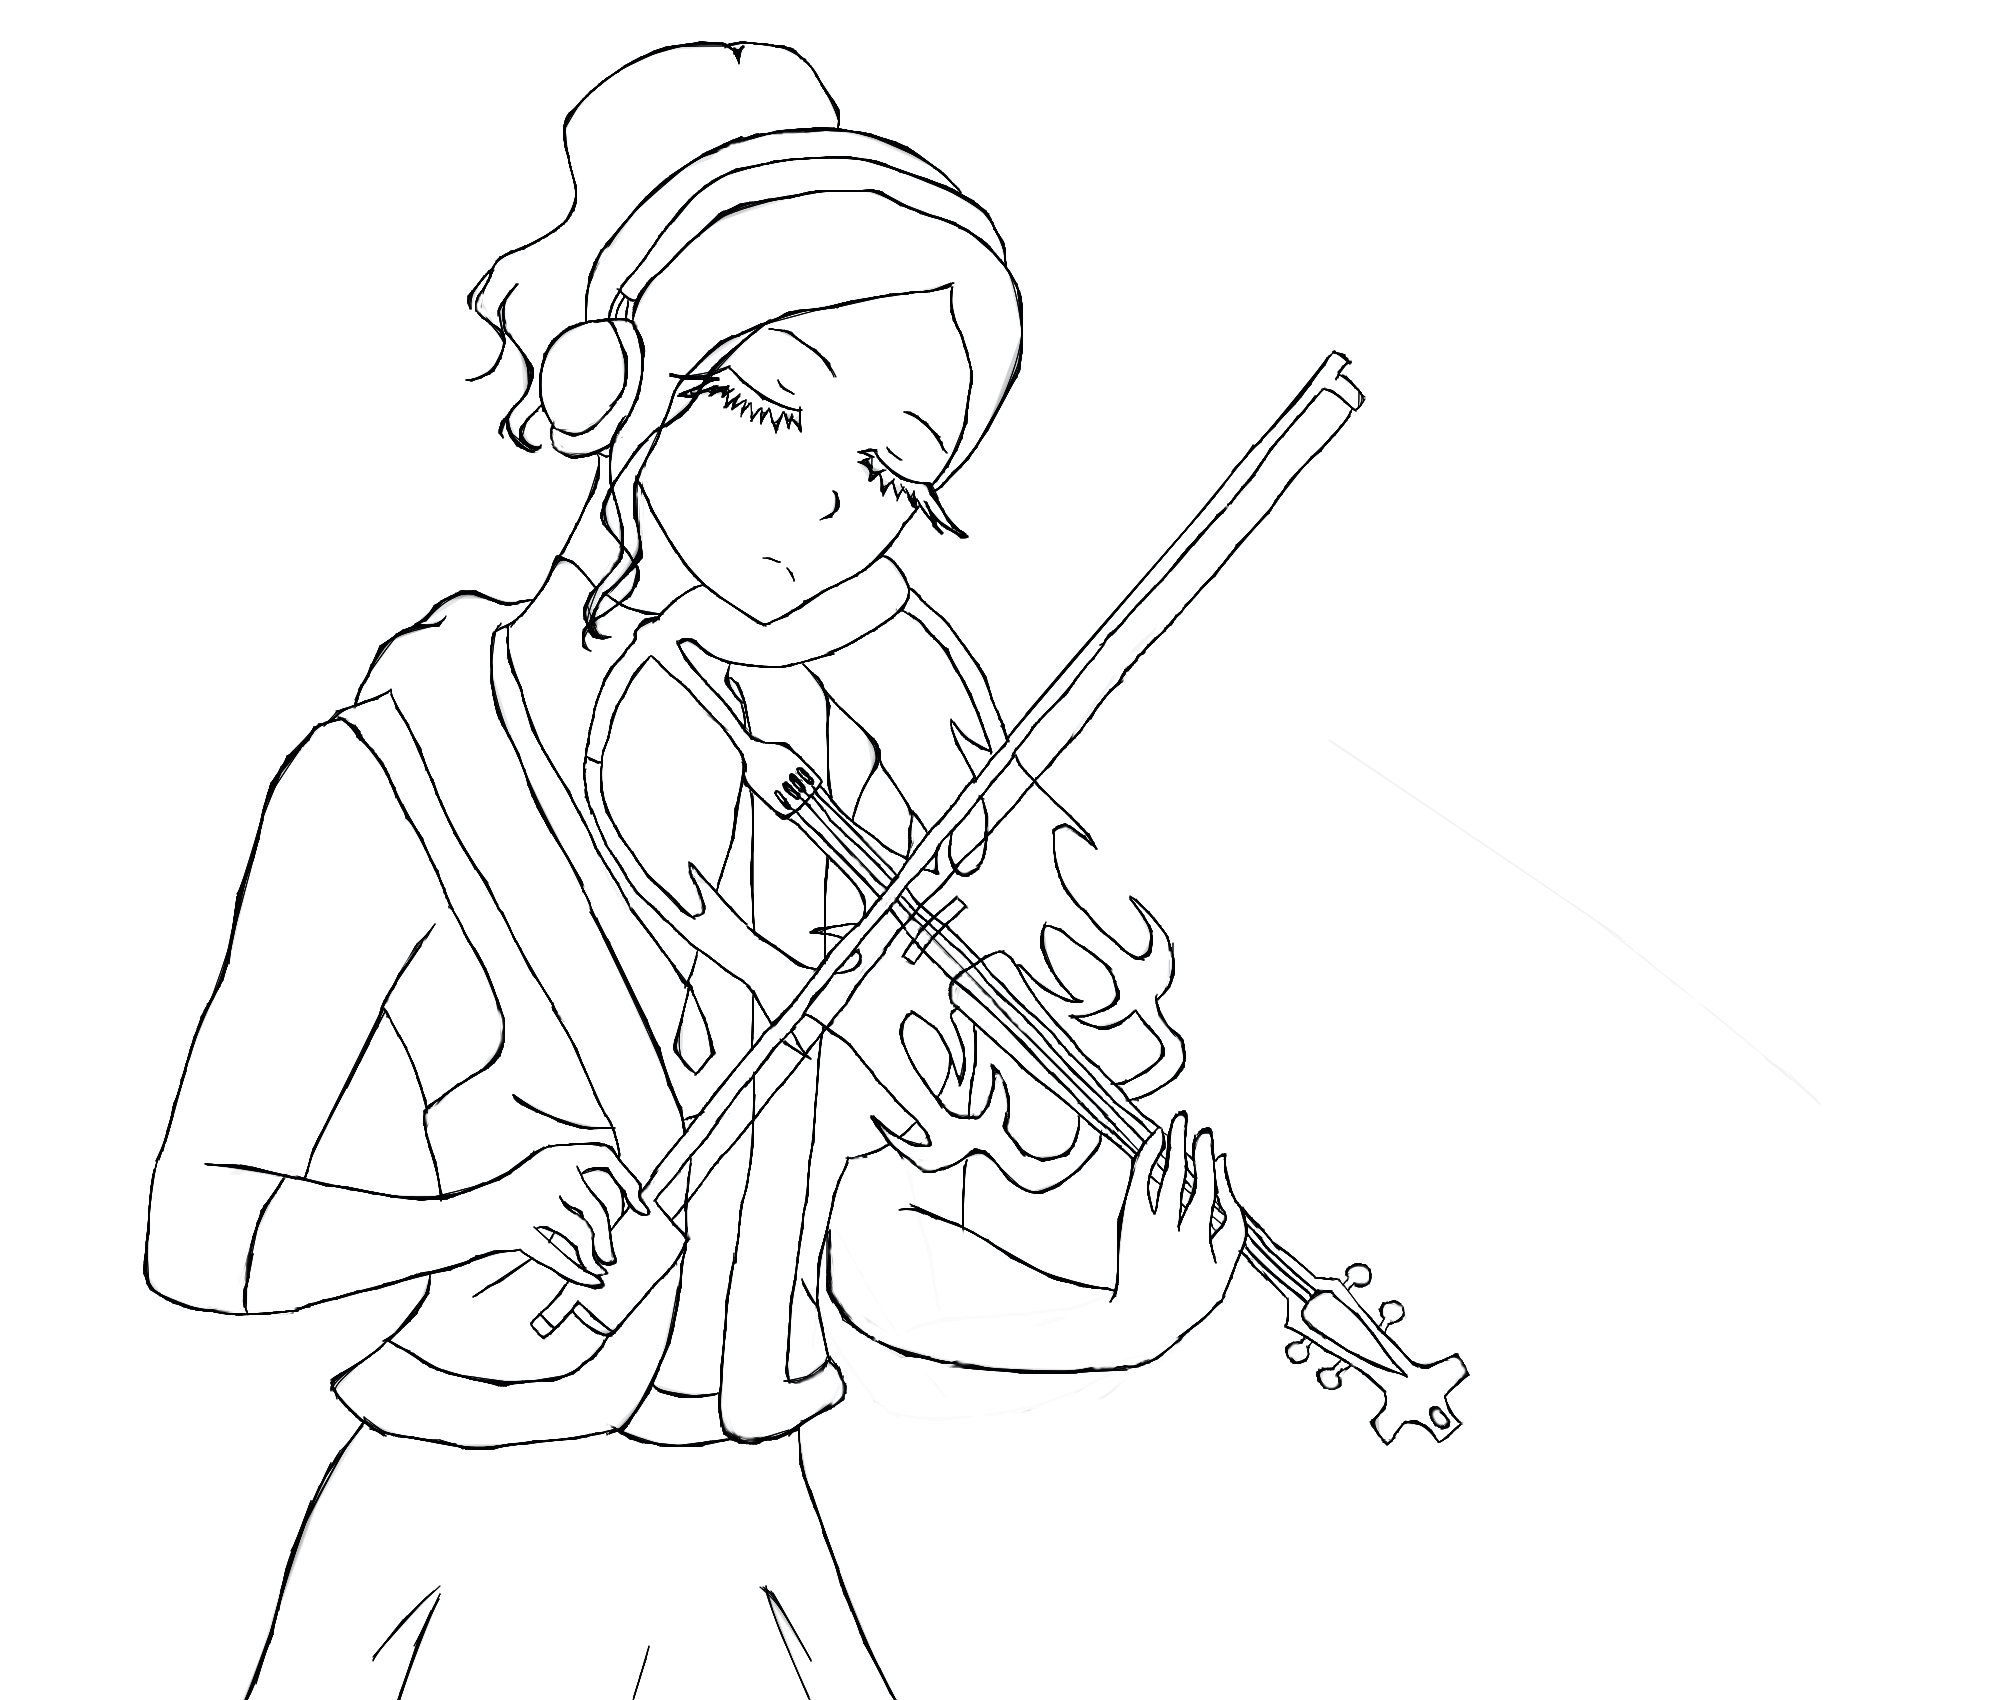 Drawn violin line drawing 198329 Outline by DeviantArt Outline